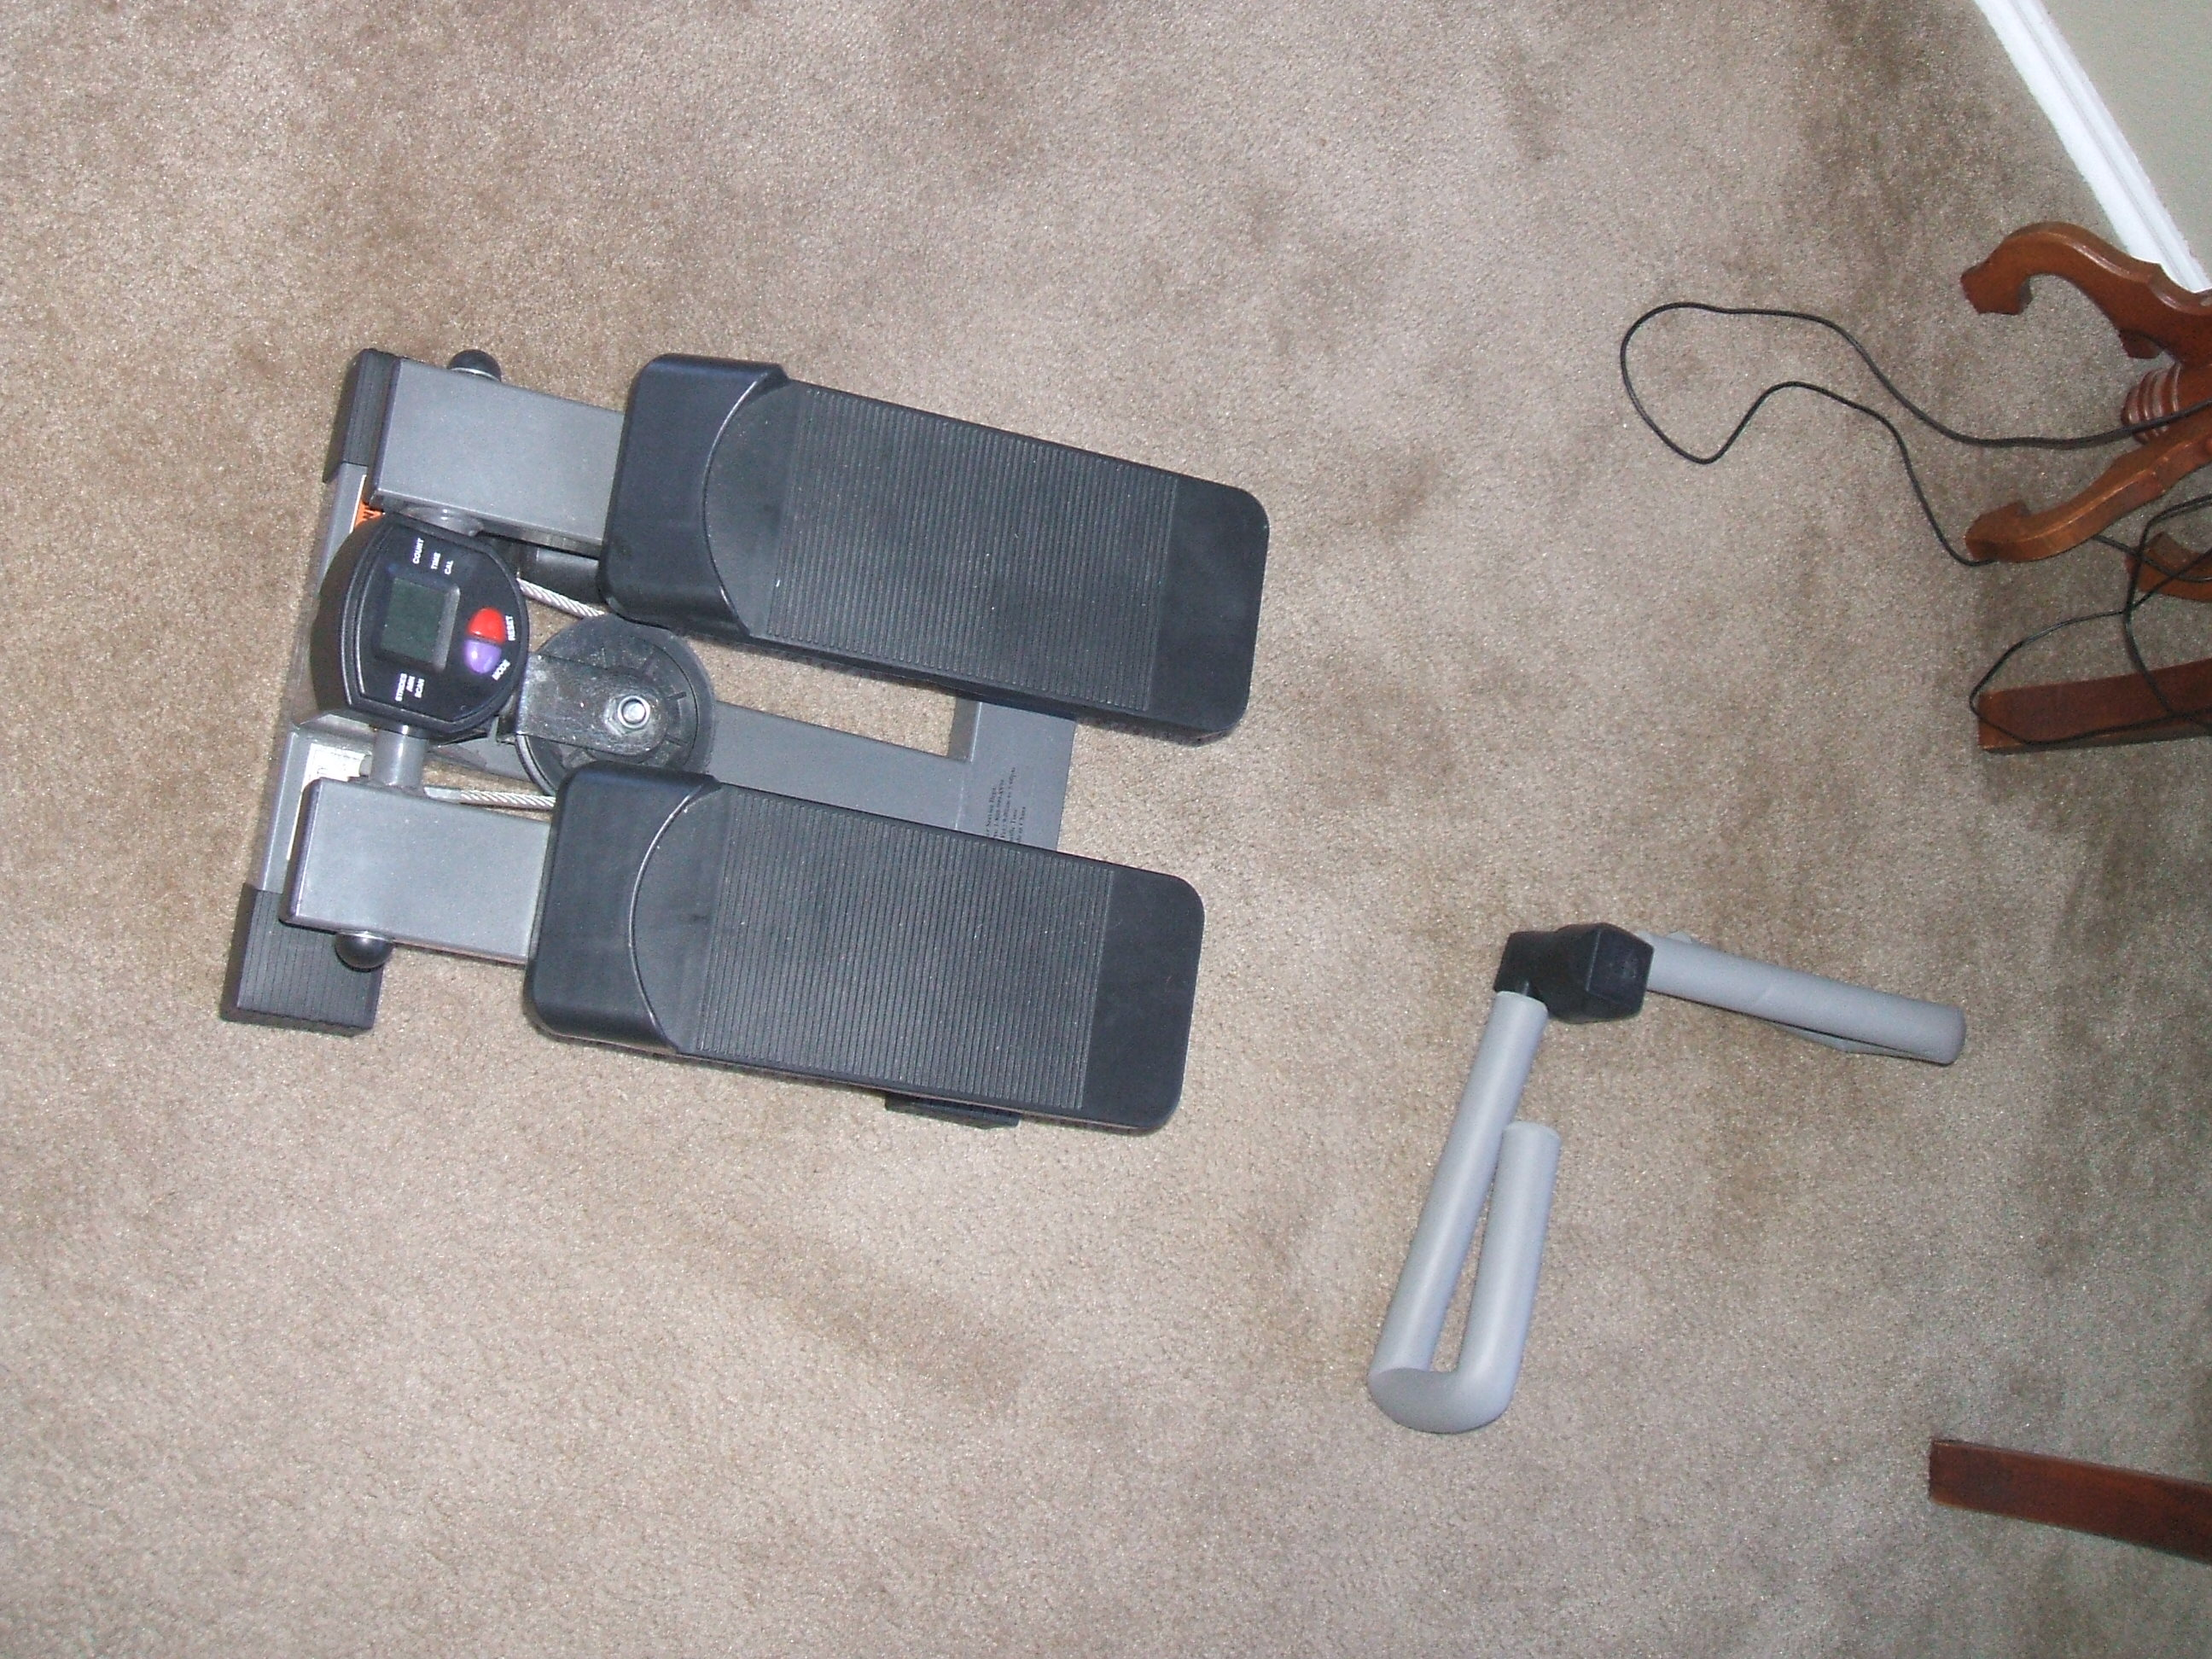 mini stairclimber and thighmaster for rainy days in Texas